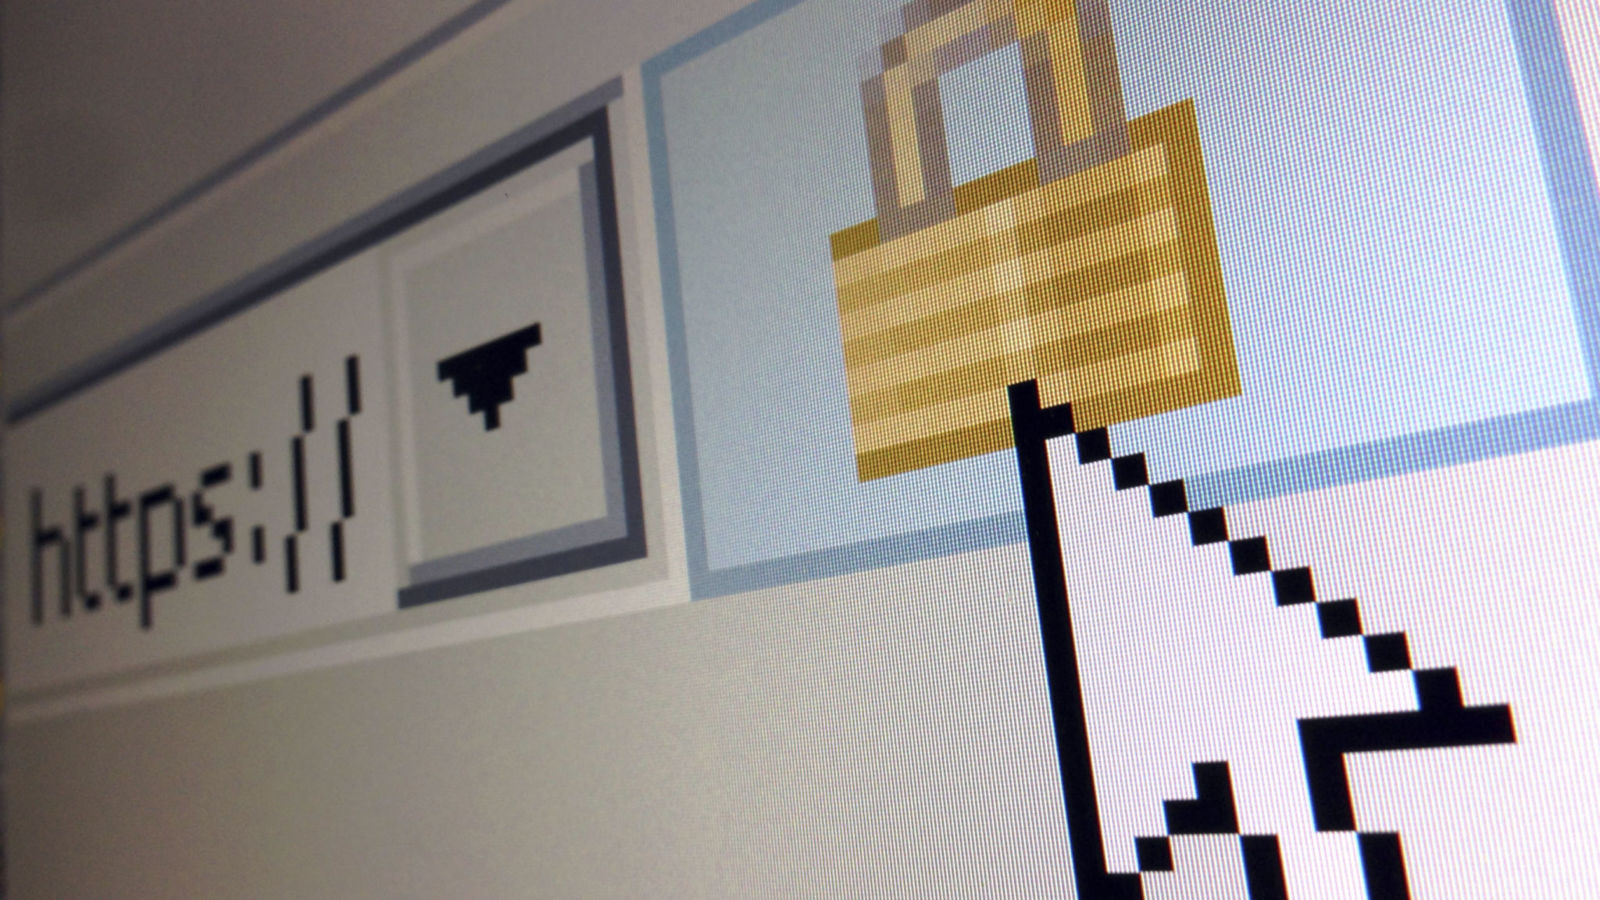 Council fined £100k over Heartbleed cyberattack